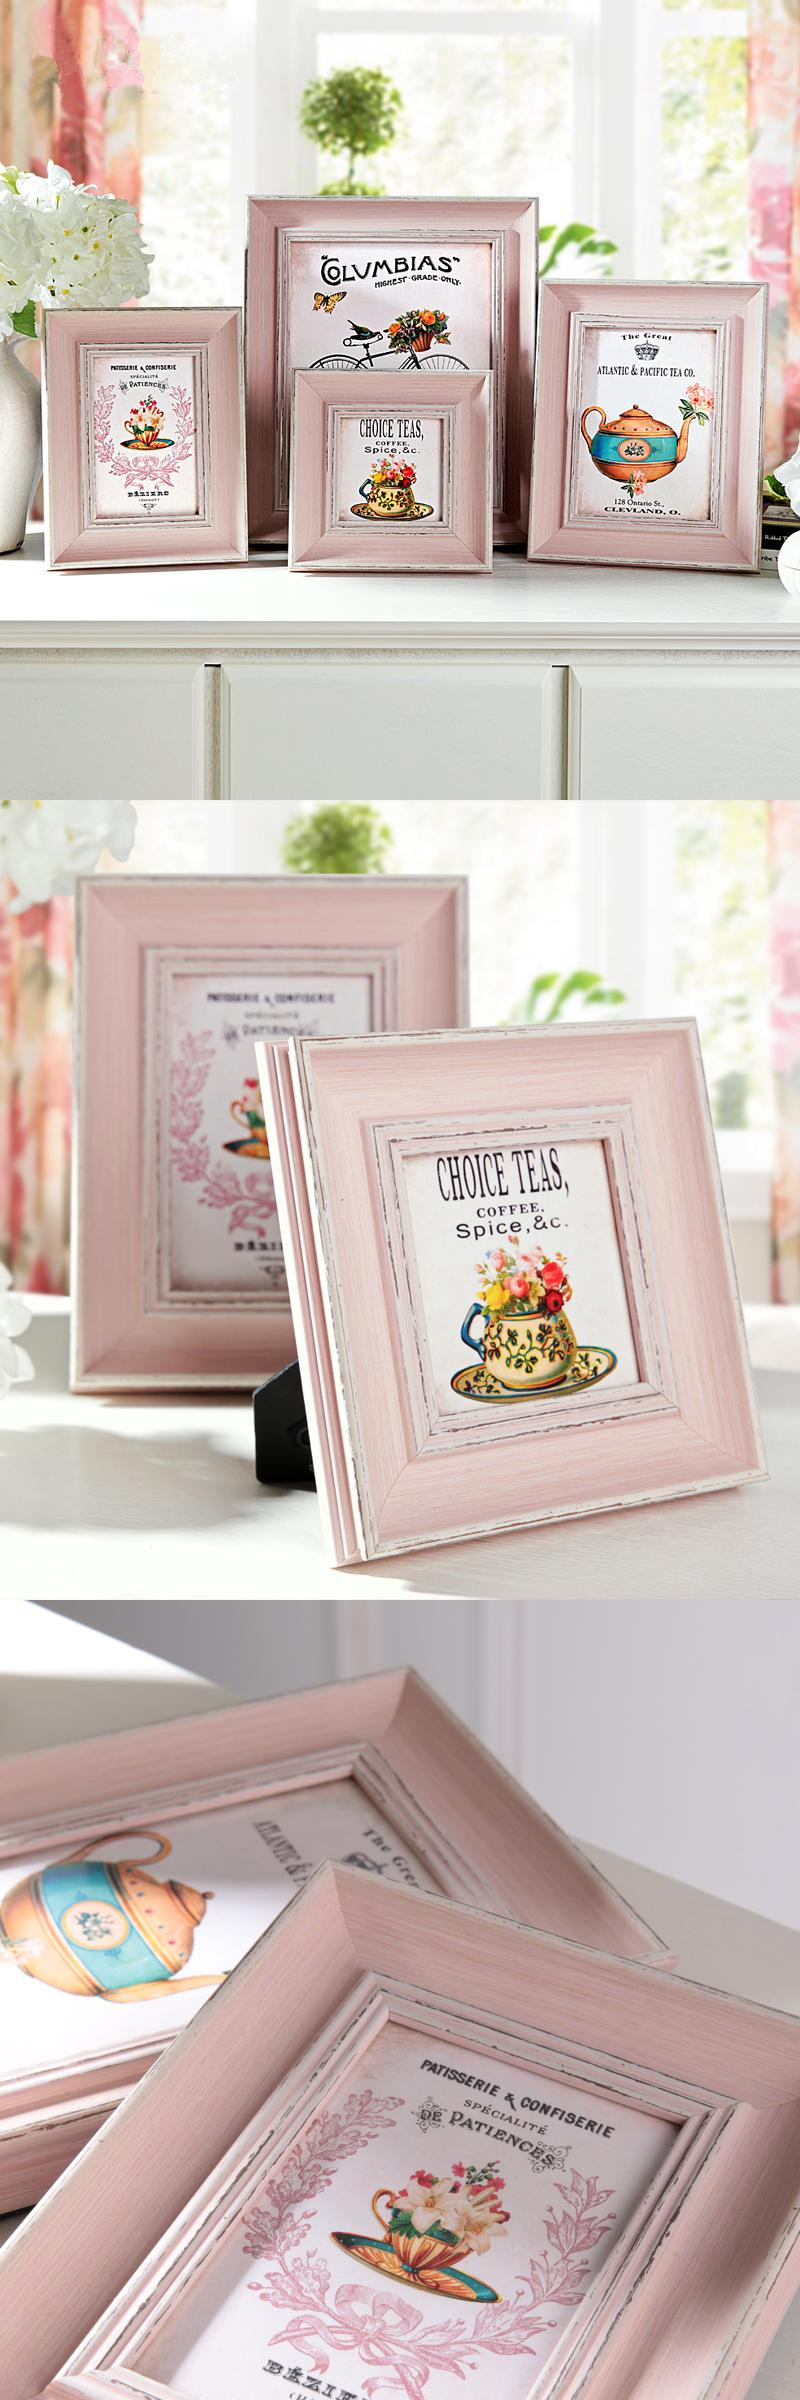 [Visit to Buy] New Pink Photo Frames for Picture Wedding,Vintage Picture Frames Wall,Mini Baby Photo Frame Desktop,Wooden Picture Frame Family #Advertisement